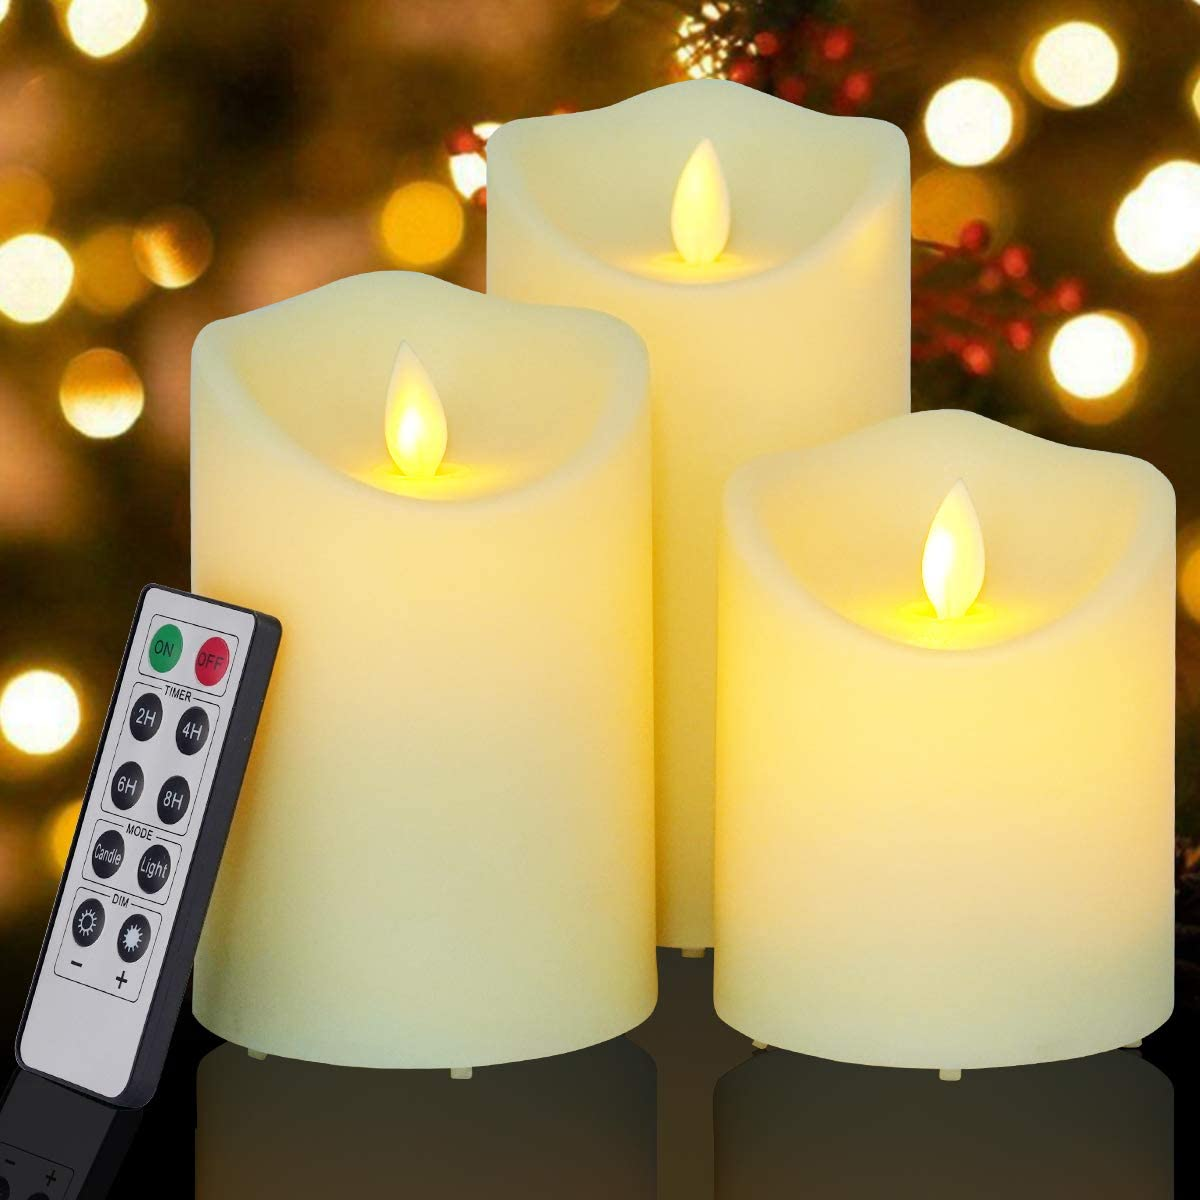 Flickering Flameless Candles Outdoor Waterproof Battery Operated Candle Led Candle Pillar Frosted Plastic Candle Set of 3 Include Realistic Dancing LED Flames and Remote Control D 3.25 x H 4 5 6